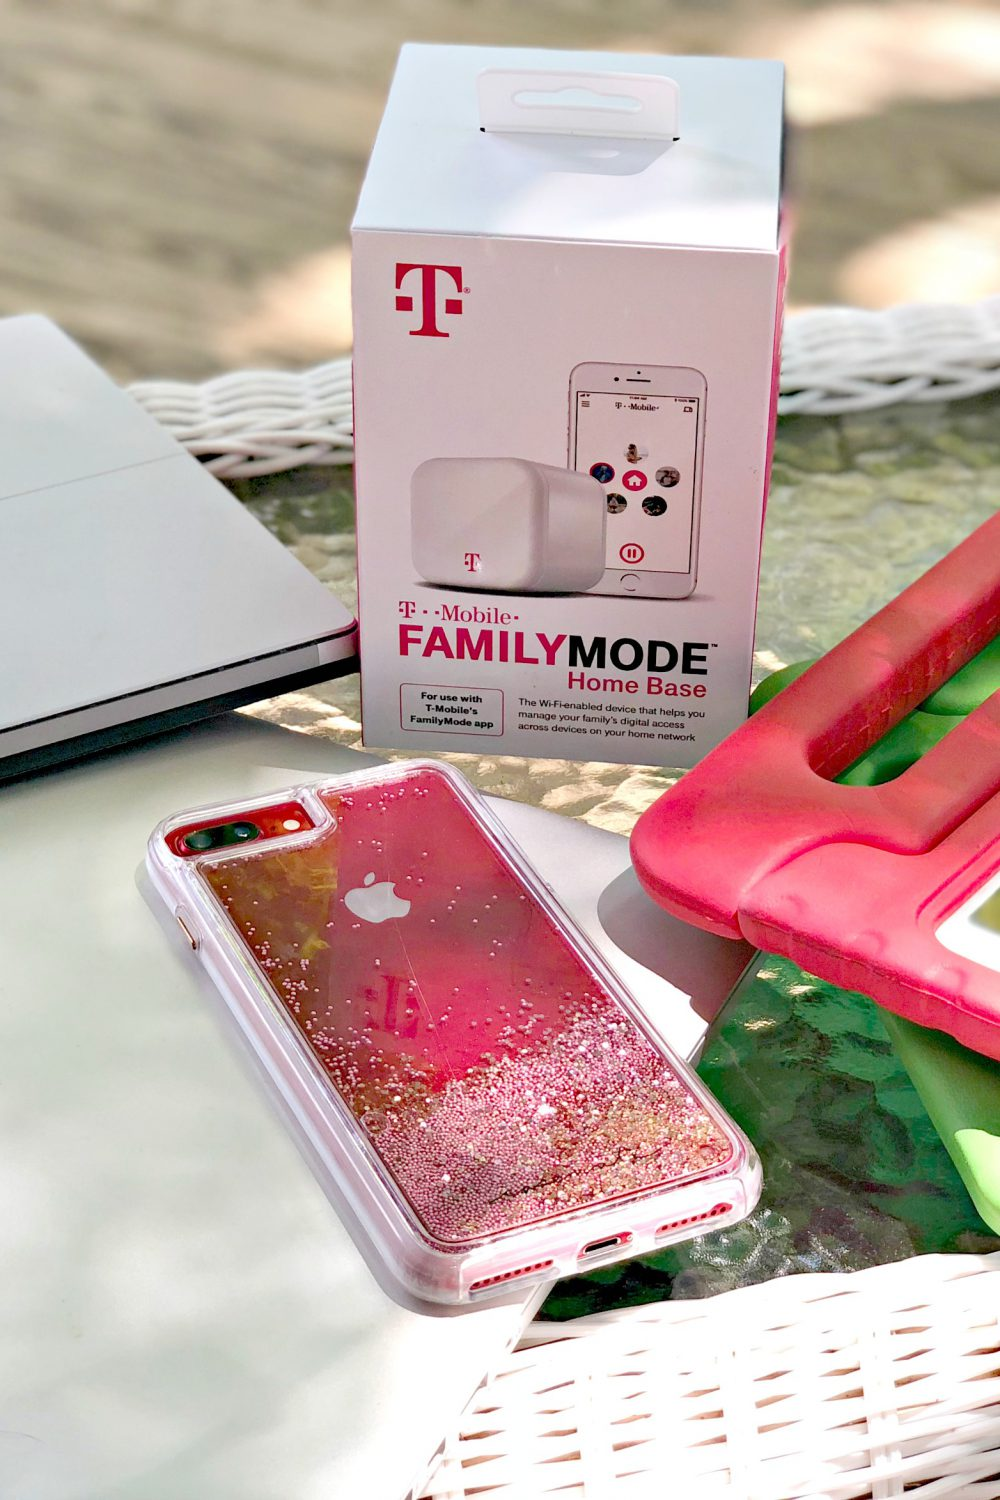 Develop Safe Screen Habits with T-Mobile FamilyMode